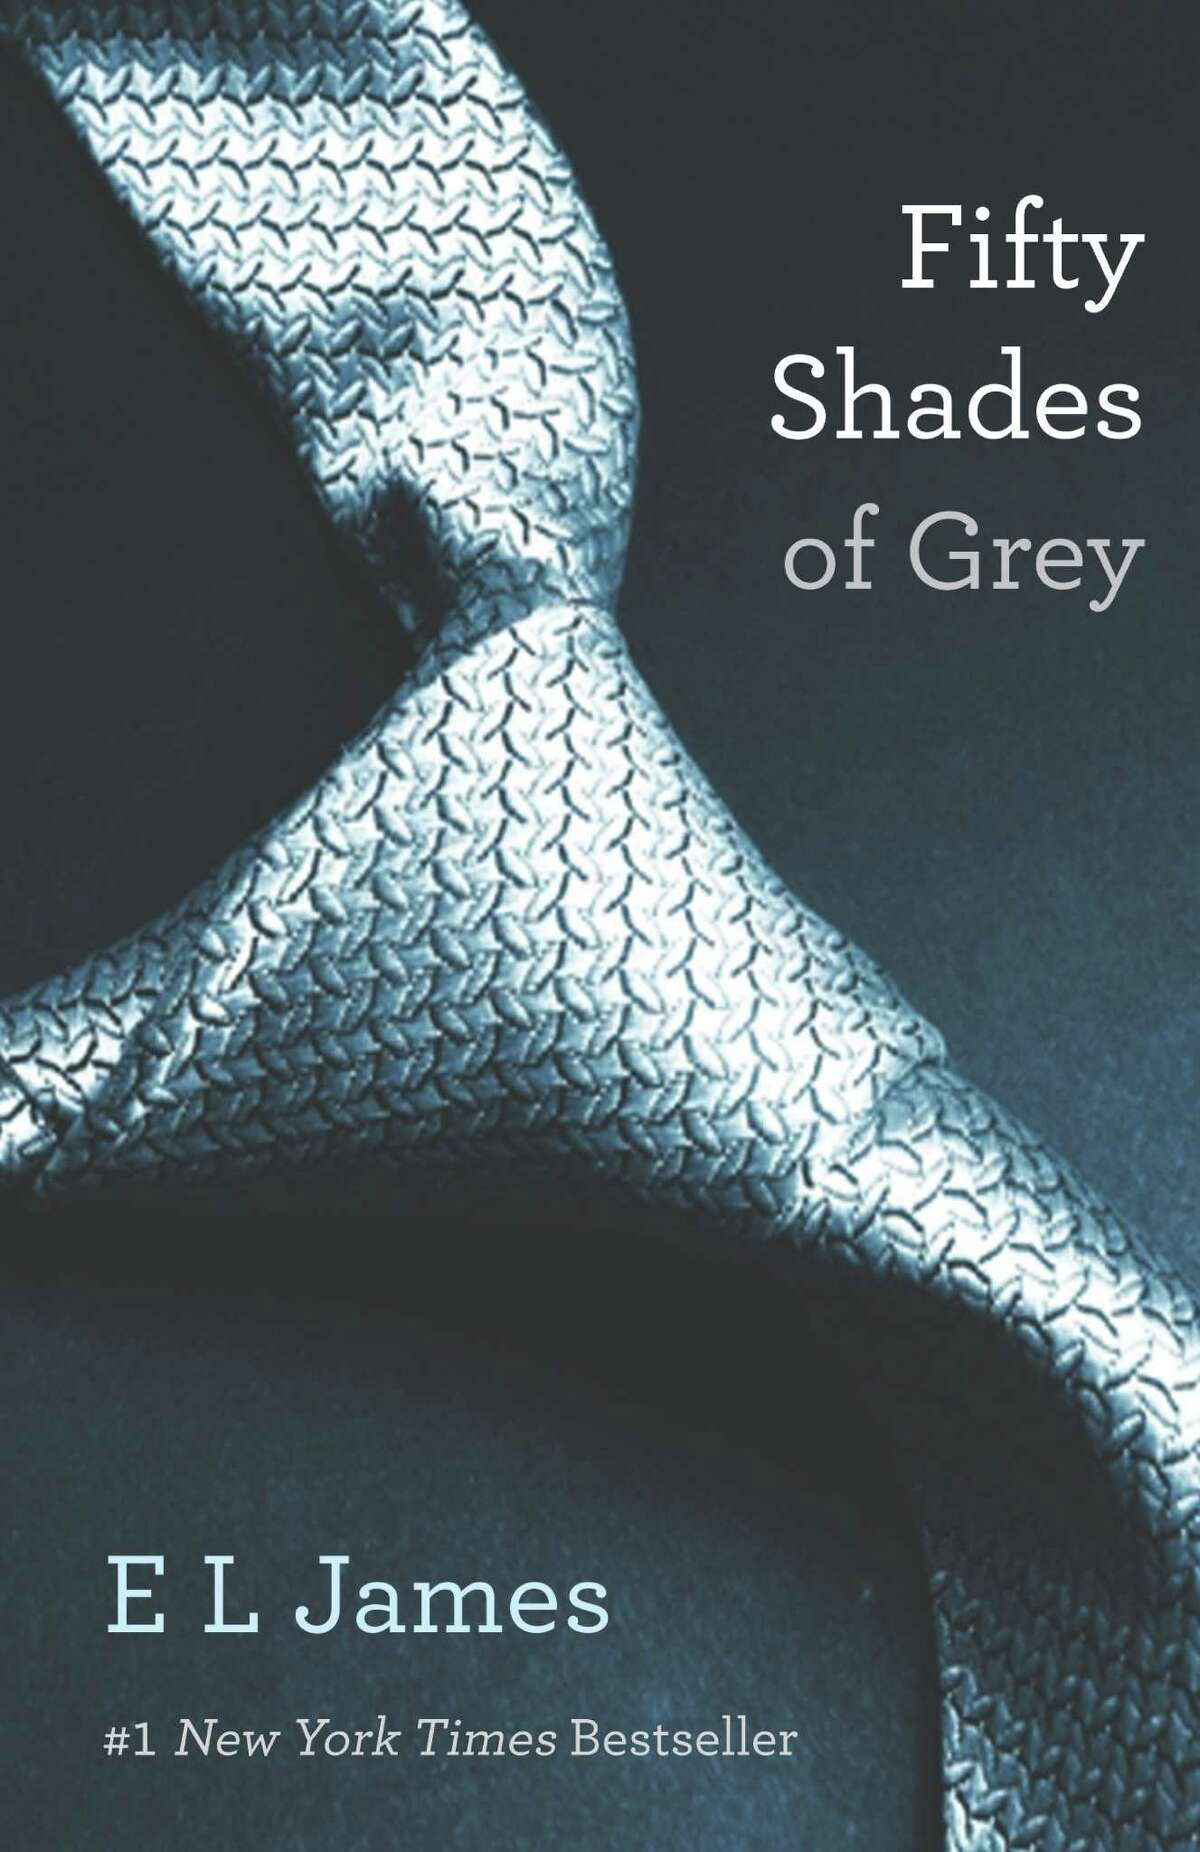 Fifty Shades of Grey This 2011 erotic romance novel by E.L. James spurred a three-part series set in Vancouver and Seattle. Its origins are actually traced to Twilight-inspired fan fiction originally published on the internet. Though panned by several critics, the series has sold more than 70 million copies in 37 countries.